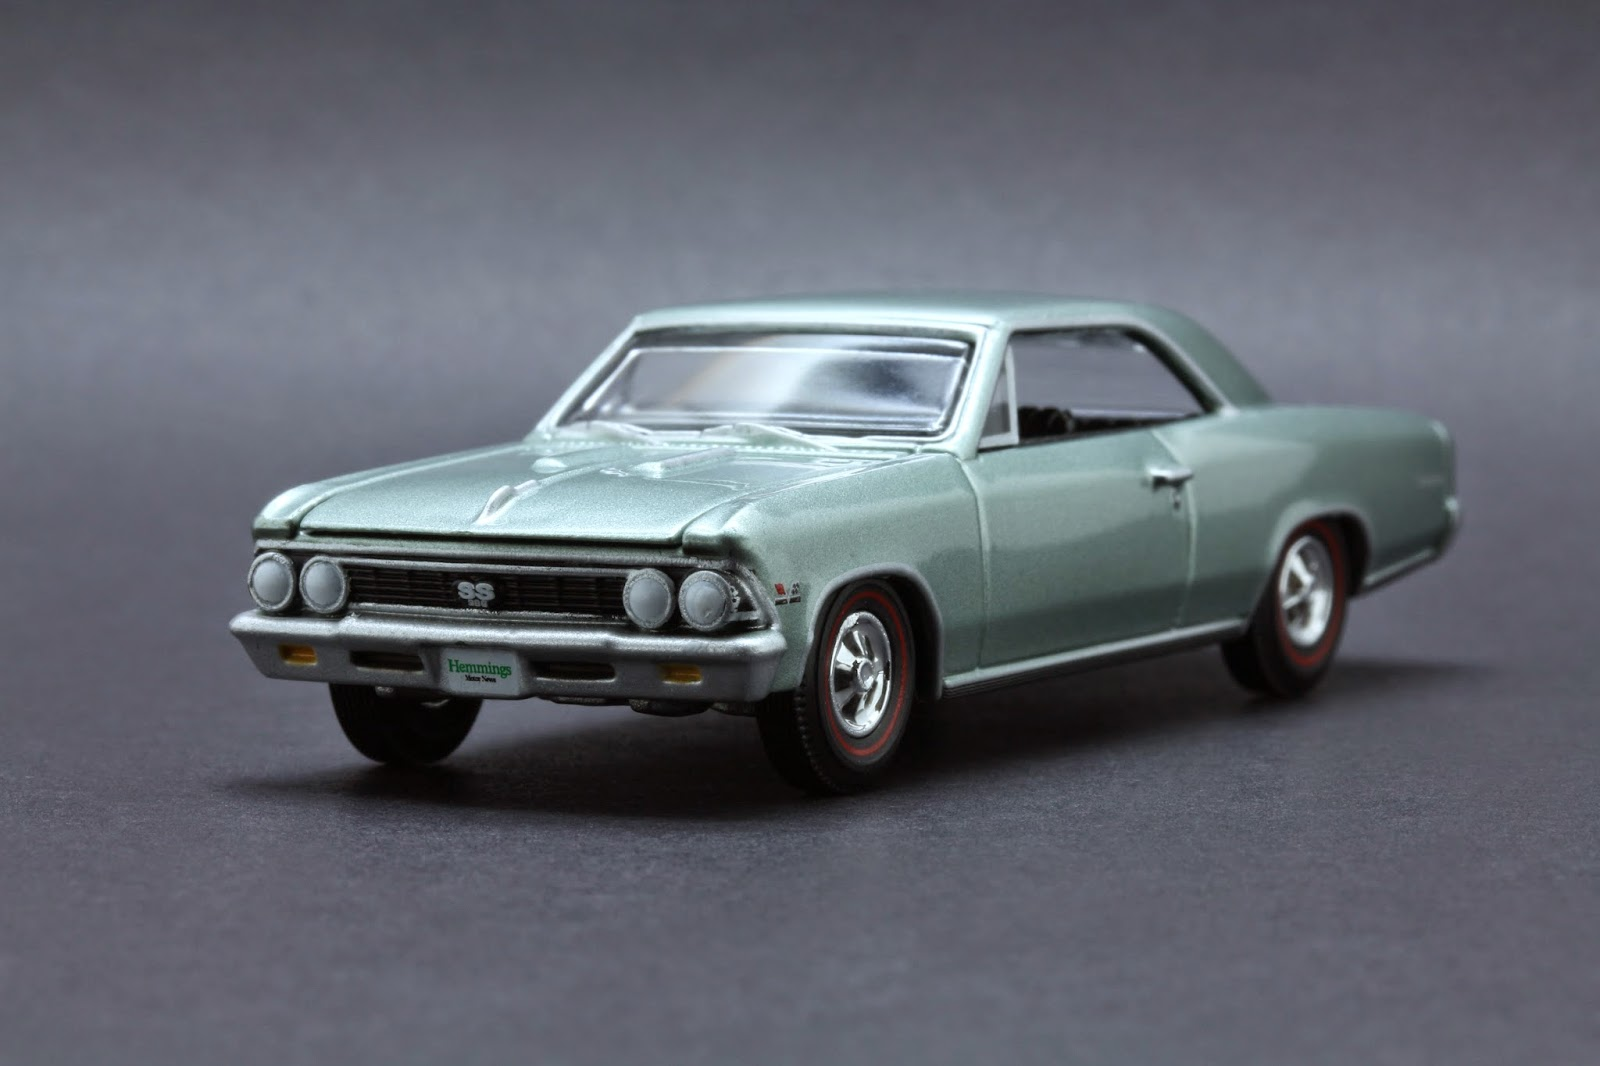 Diecast Hobbist 1966 Chevrolet Chevelle Ss 396 164 Scale From Autoworld Licensed Release 3 Version B